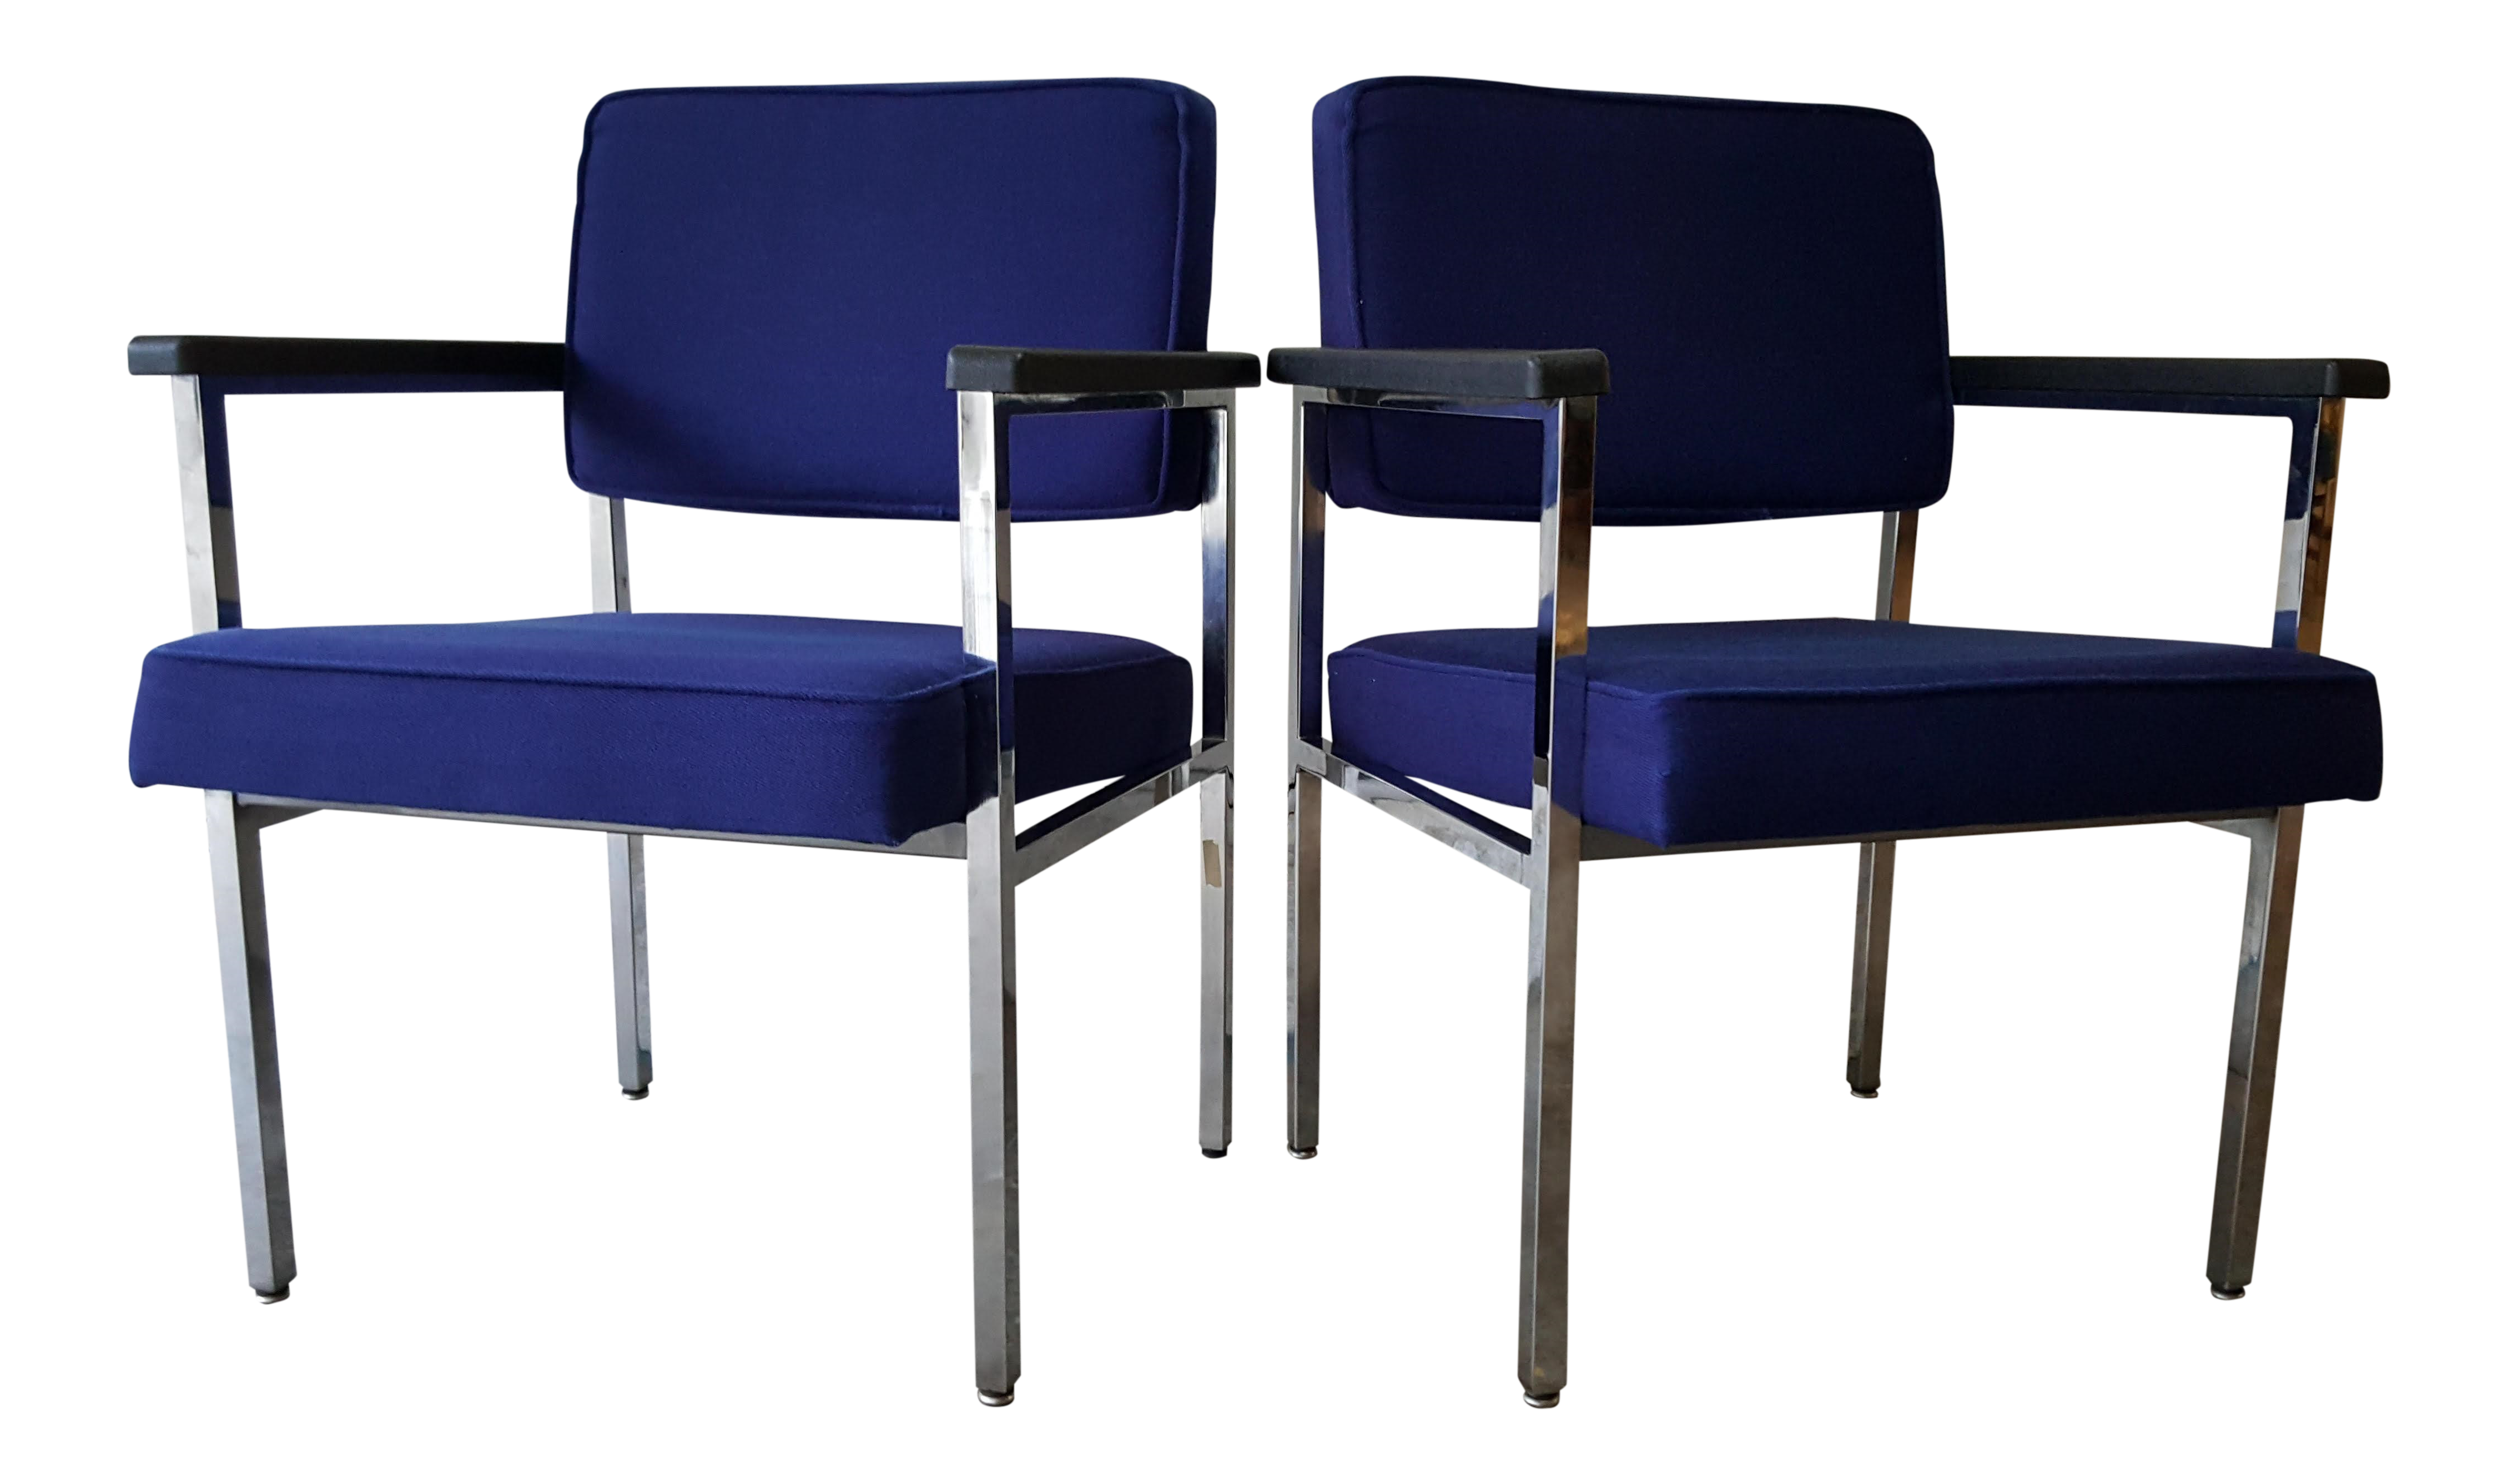 Vintage Steelcase Lounge Chair - Vintage blue chair by steelcase inc